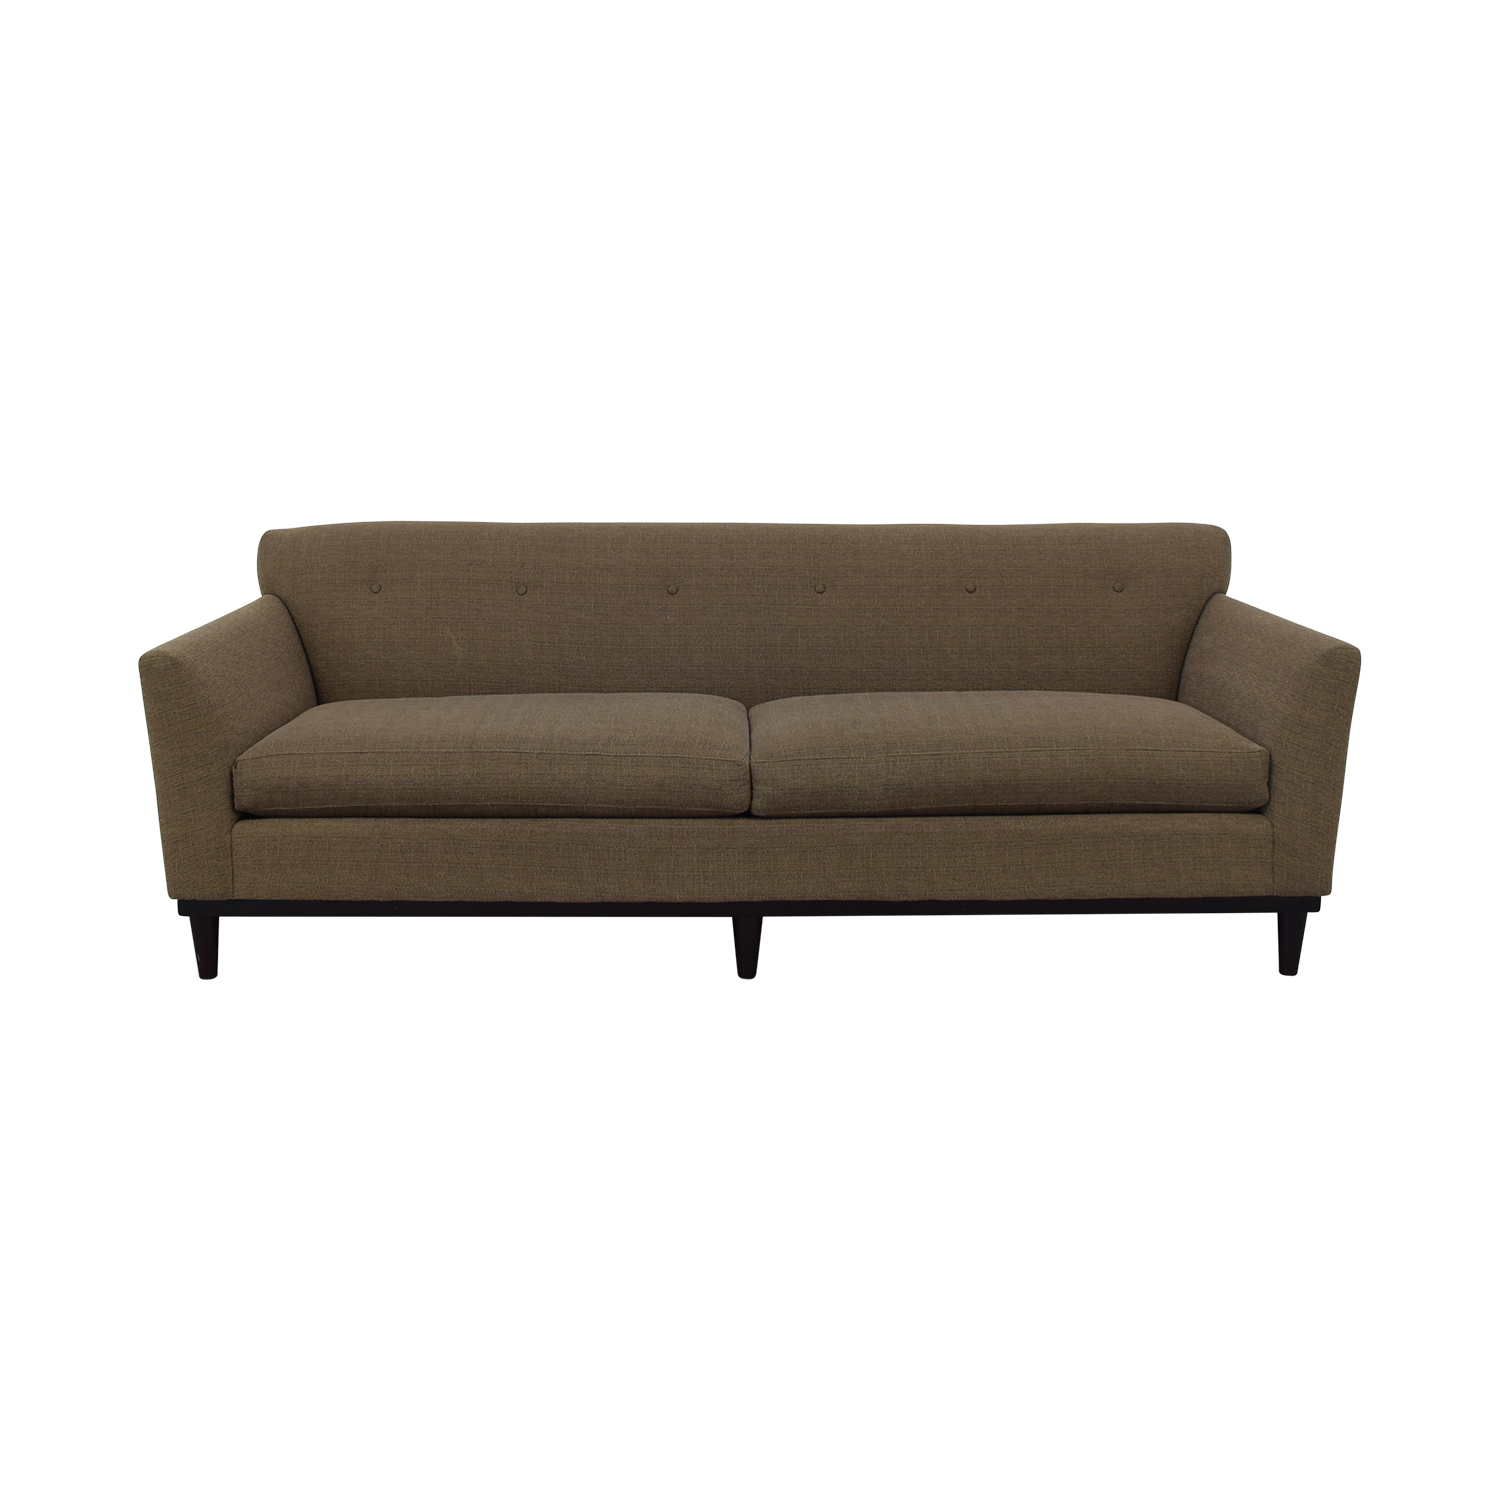 buy Room & Board Room & Board Mid Century Modern Two Cushion Sofa online